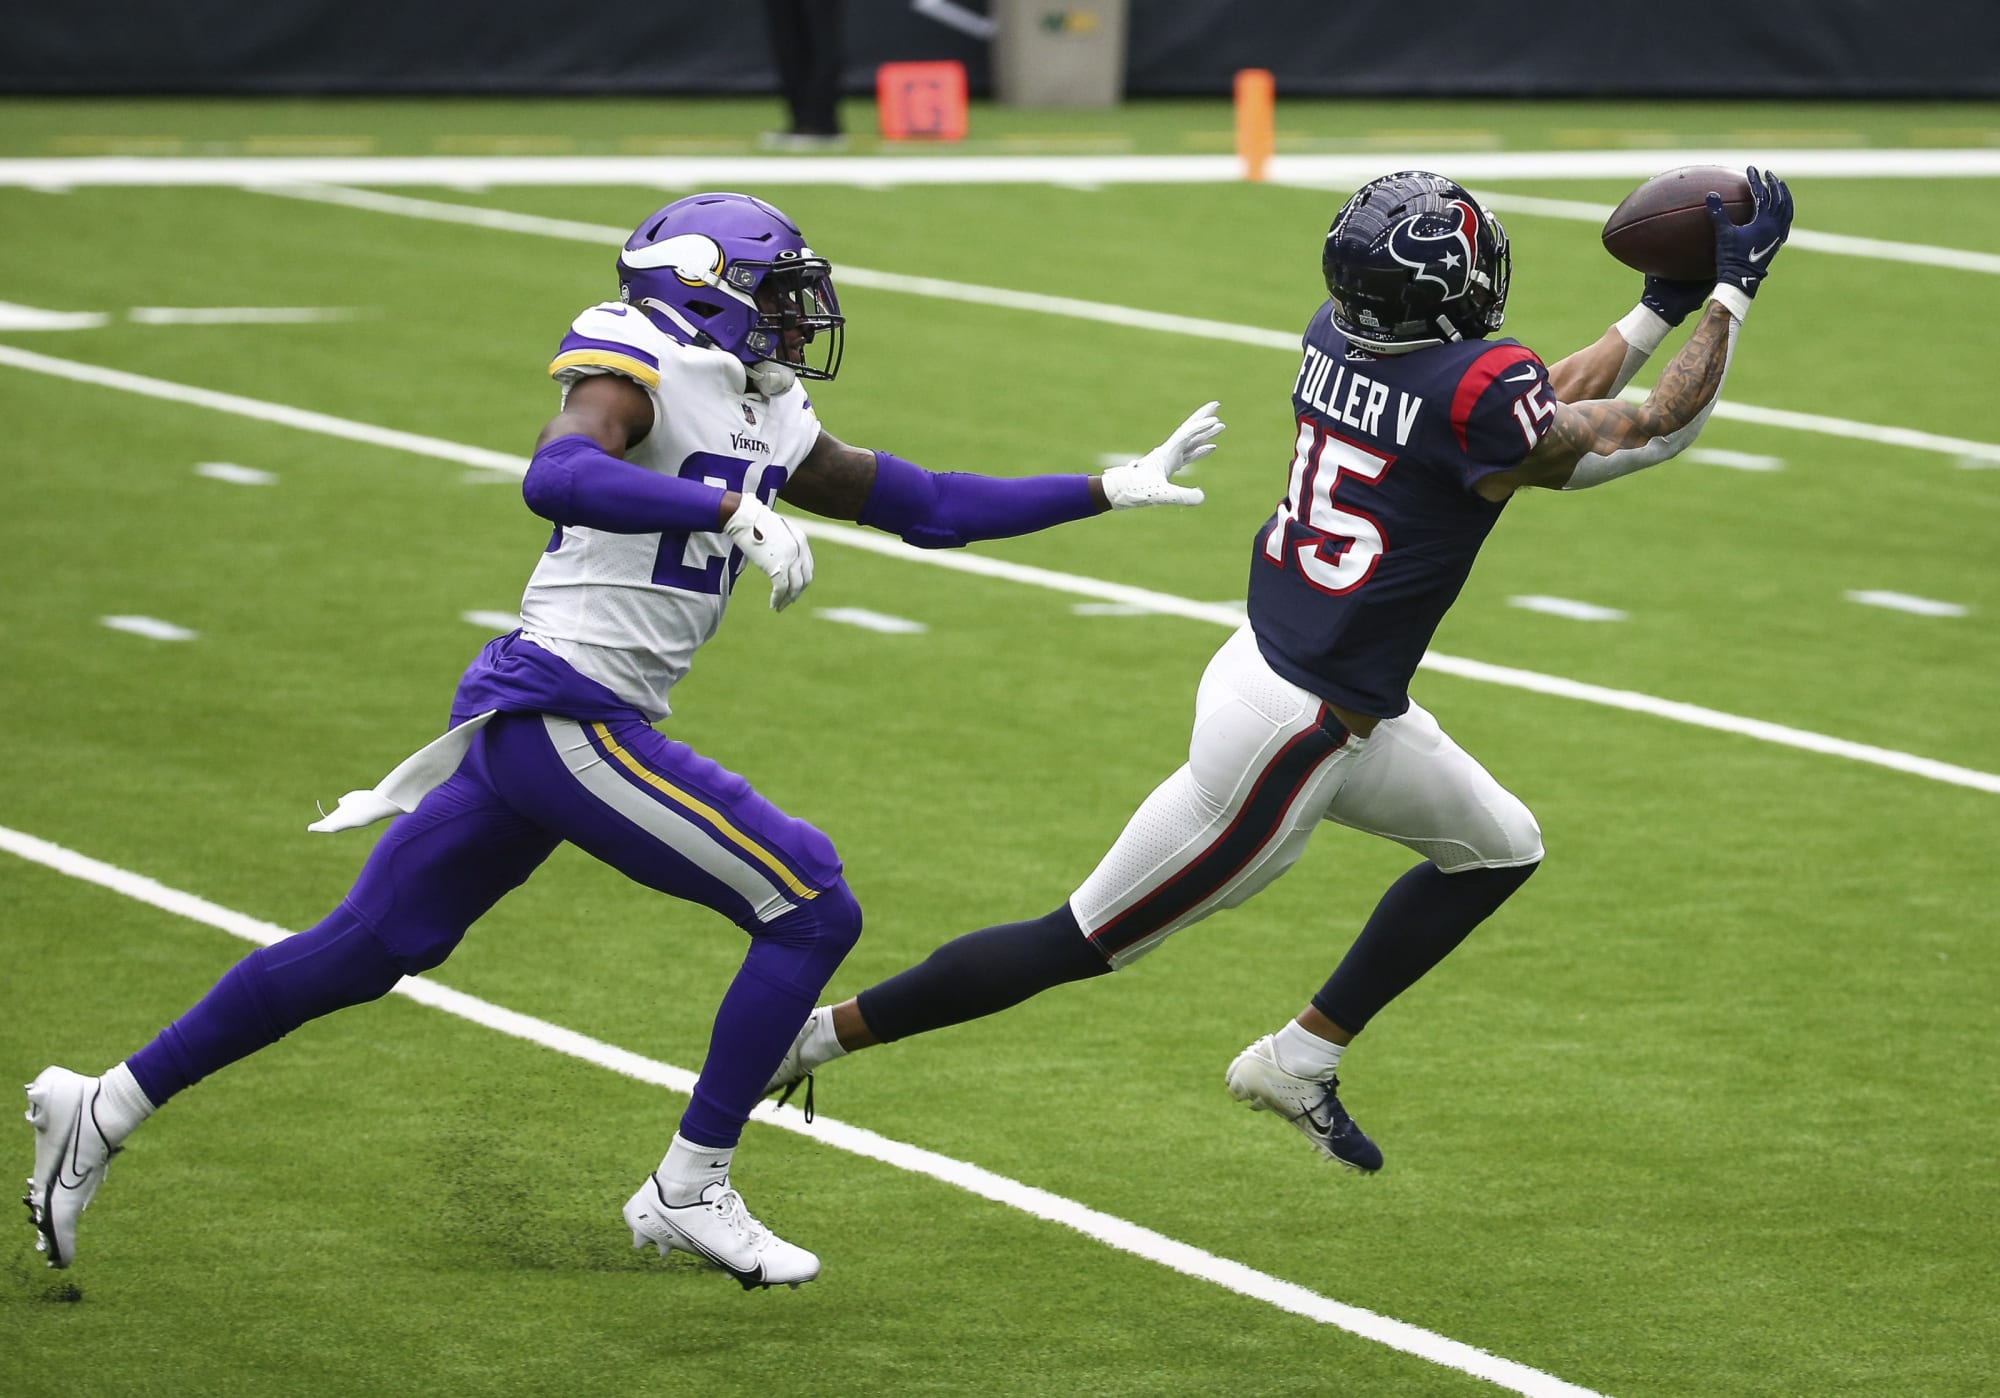 Packers will need a serious offer to pry Will Fuller from the Texans